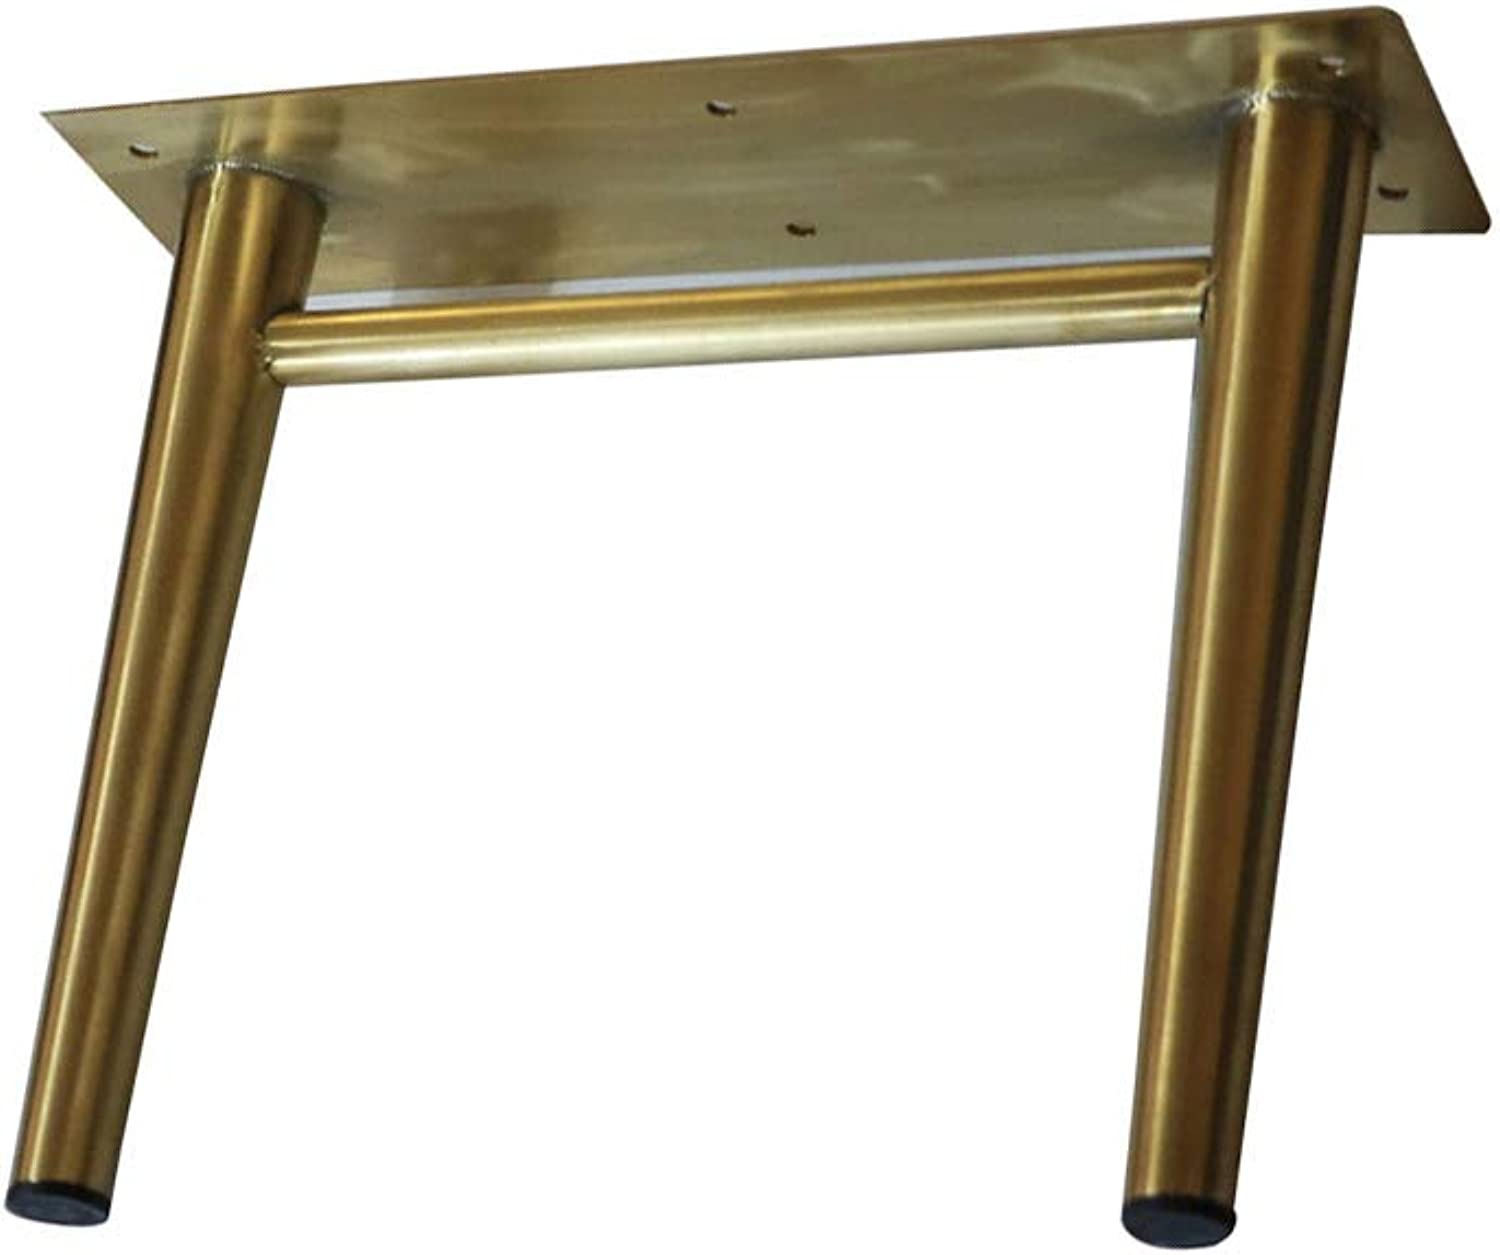 Metal Furniture feet, 2 Stainless Steel 20cm TV Cabinet feet, Brushed Titanium gold Connecting feet, Nordic Bathroom Cabinet Coffee Table Support Legs